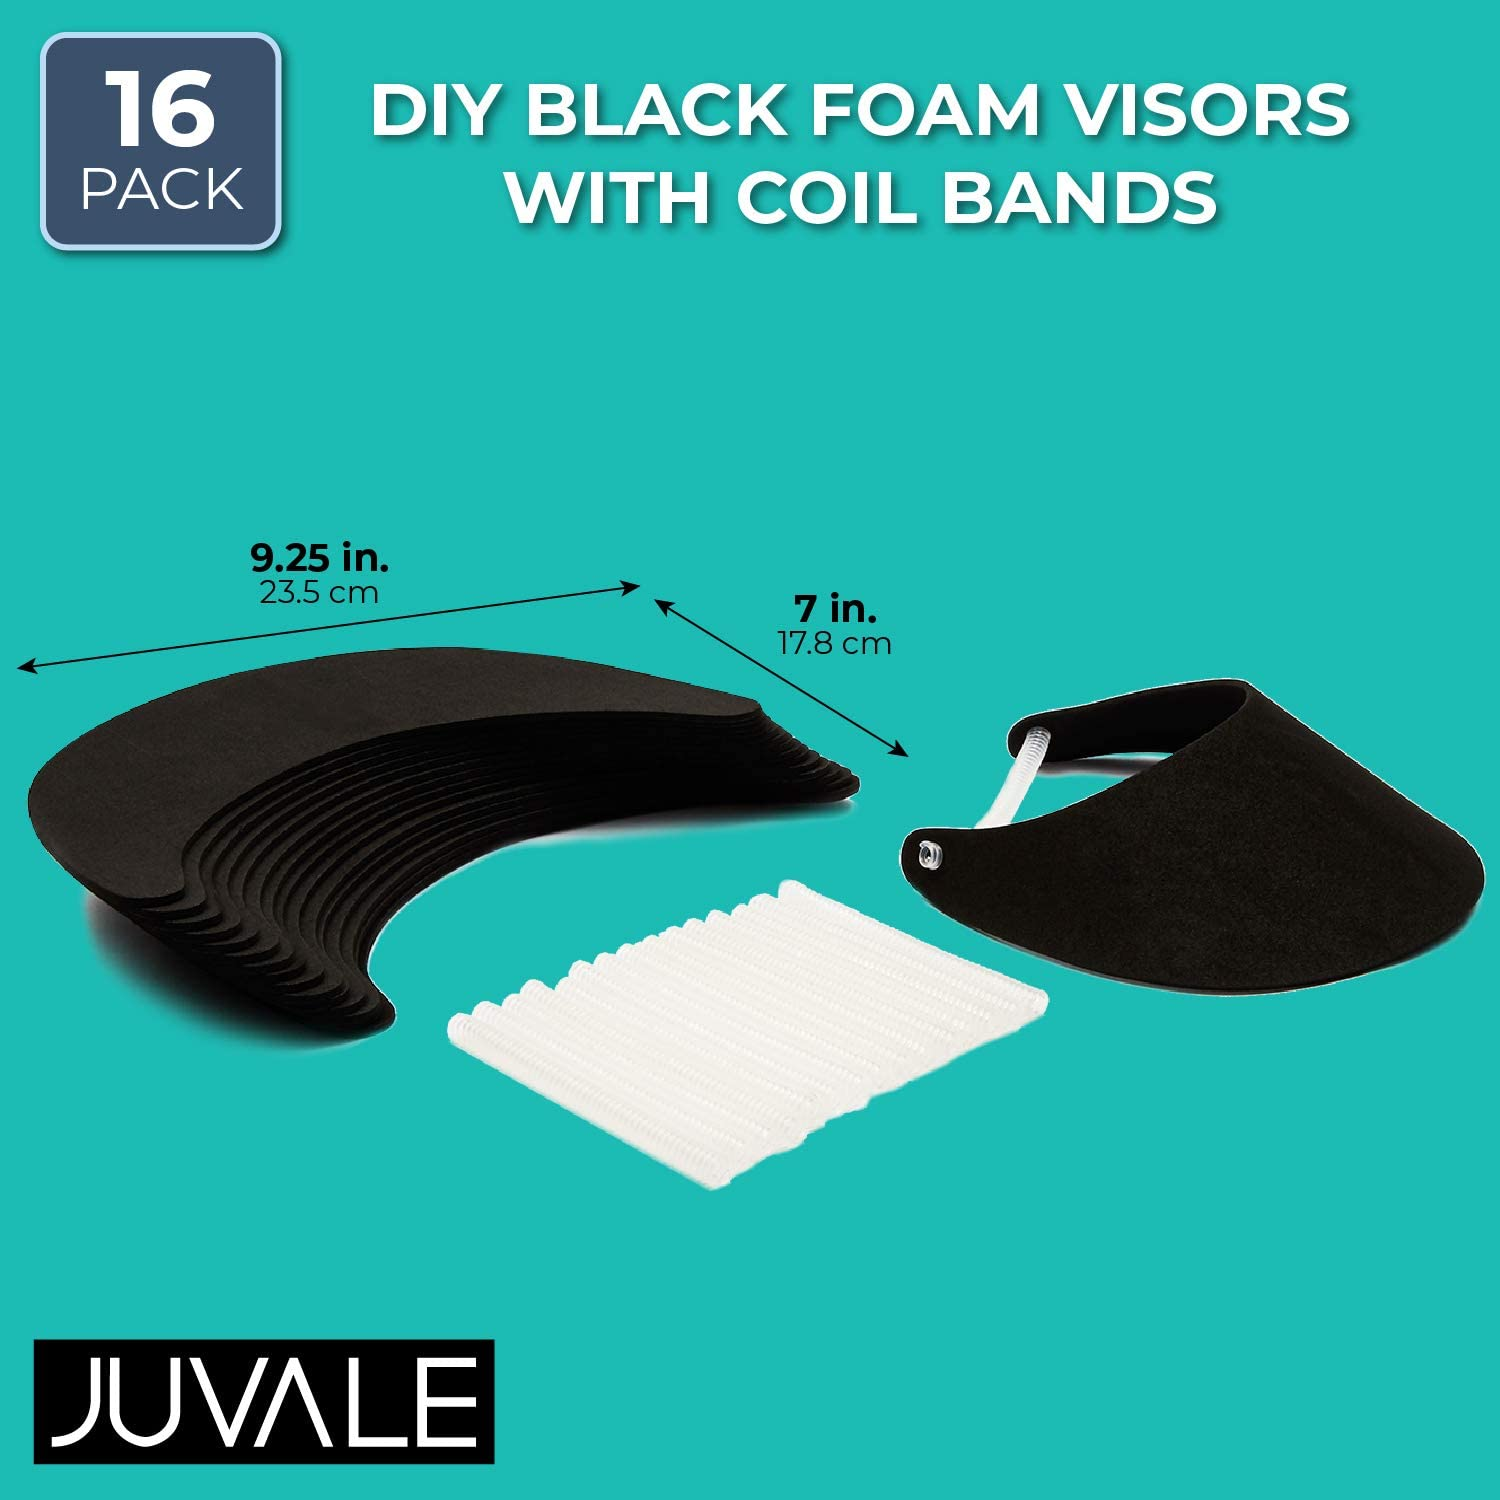 16 Pack Juvale Black and White Foam Visors with Coil Bands Bulk